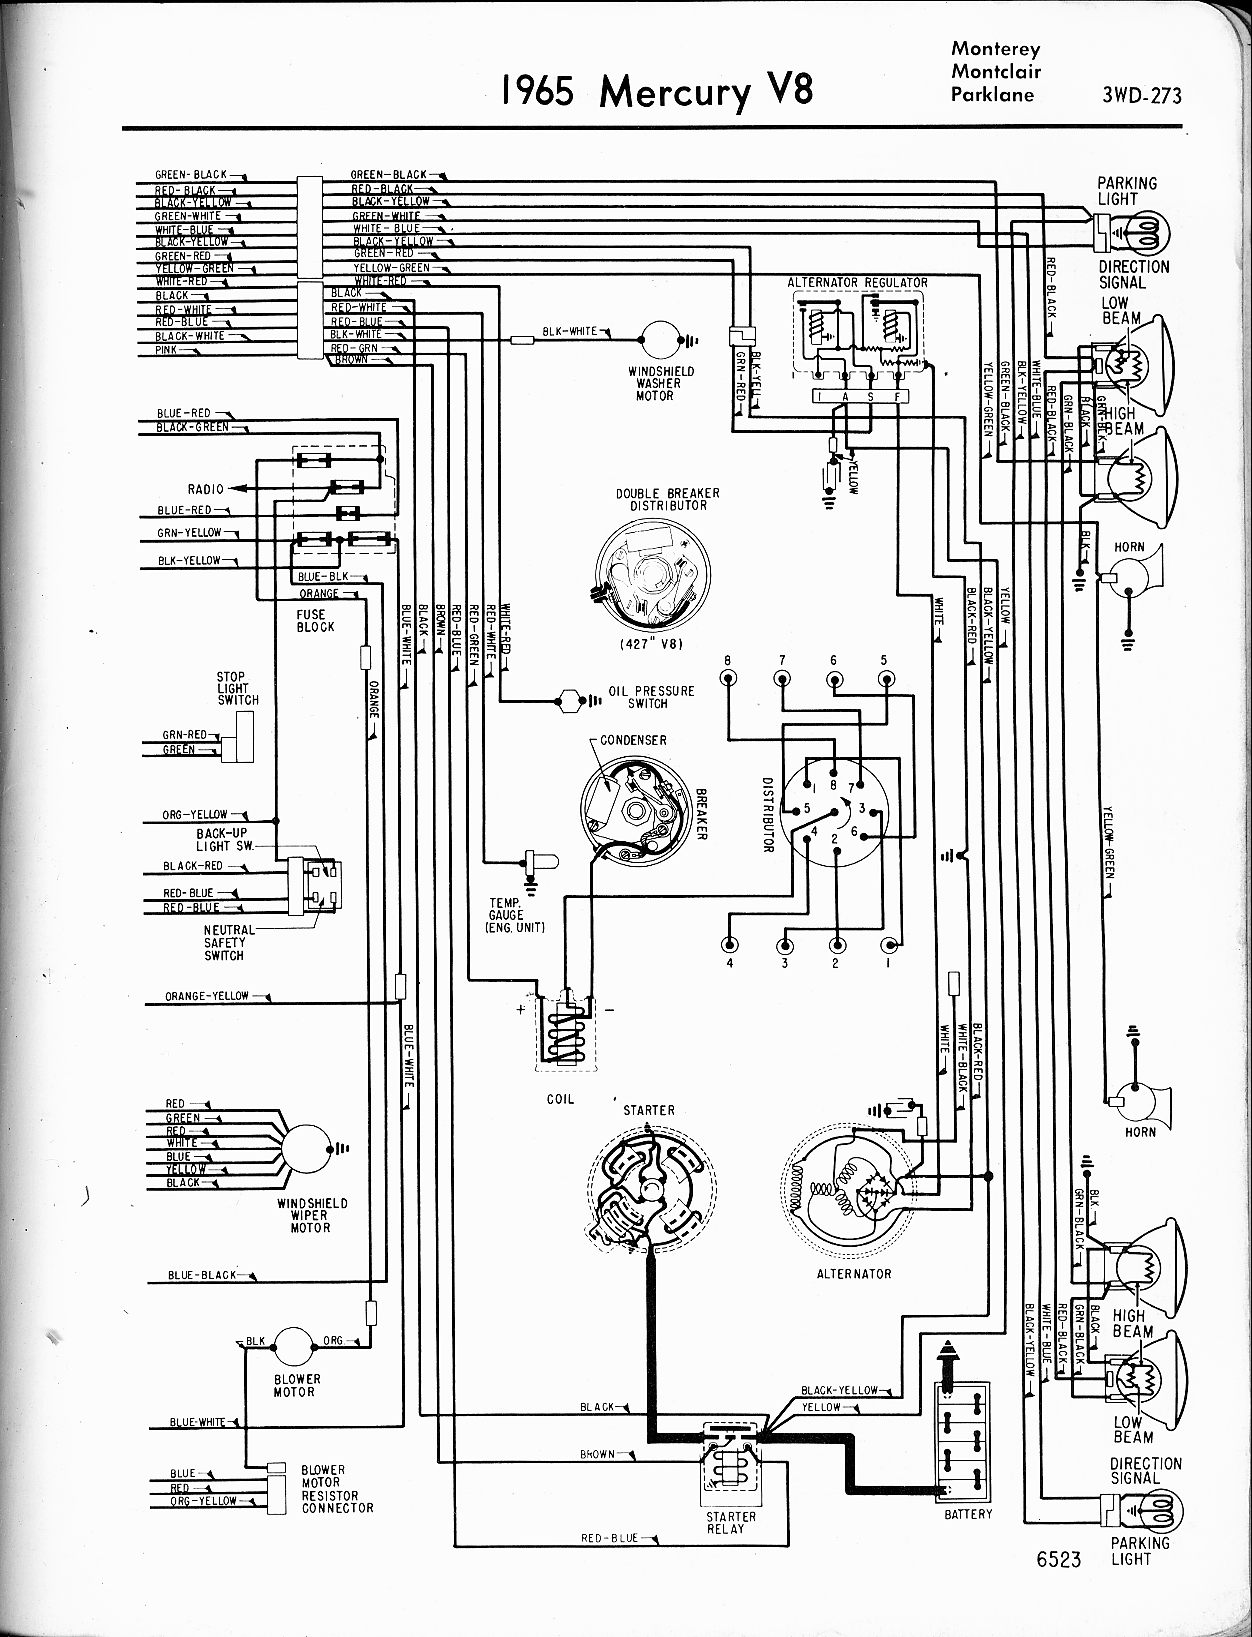 MWire5765 273 1966 lincoln continental wiring diagram 1970 lincoln continental 57 Chevy Wiring Diagram at panicattacktreatment.co